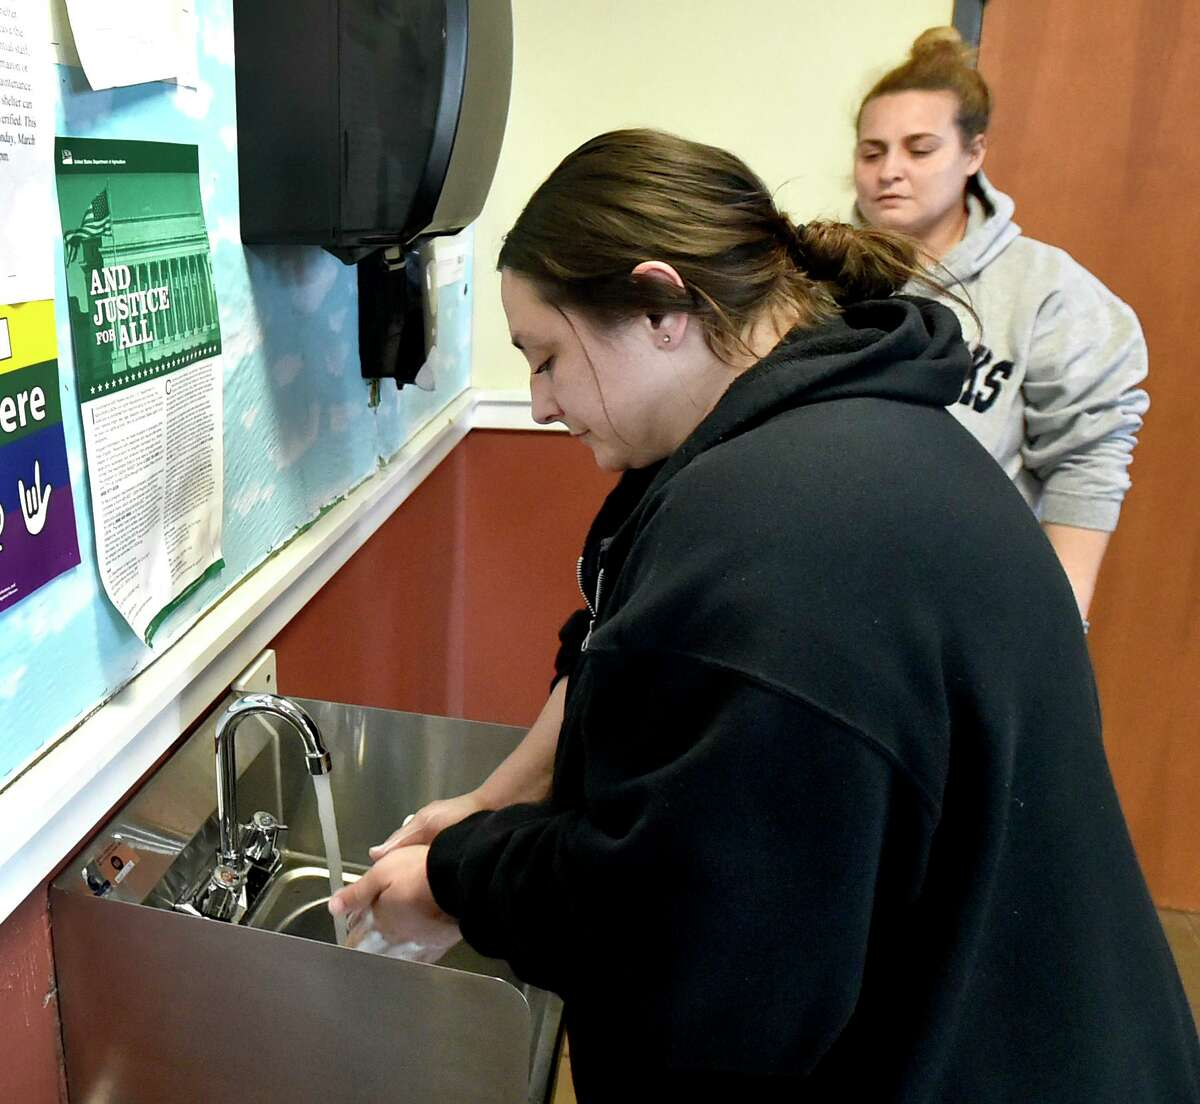 New Haven, Connecticut - Tuesday, March 31, 2020: Jeanna Suraci, 37, left, a resident at the Columbus House homeless shelter in New Haven washes her hands Tuesday in what was a water fountain and just converted into a sink for washing hands as a result of the COVID-19 / Coronavirus pandemic as resident Amber MacDonald (CQ), right, waits her turn. Columbus House is in the process of transitioning the remaining homeless residents there into their own hotel rooms in New Haven in the effort to stem the spread of COVID-19.